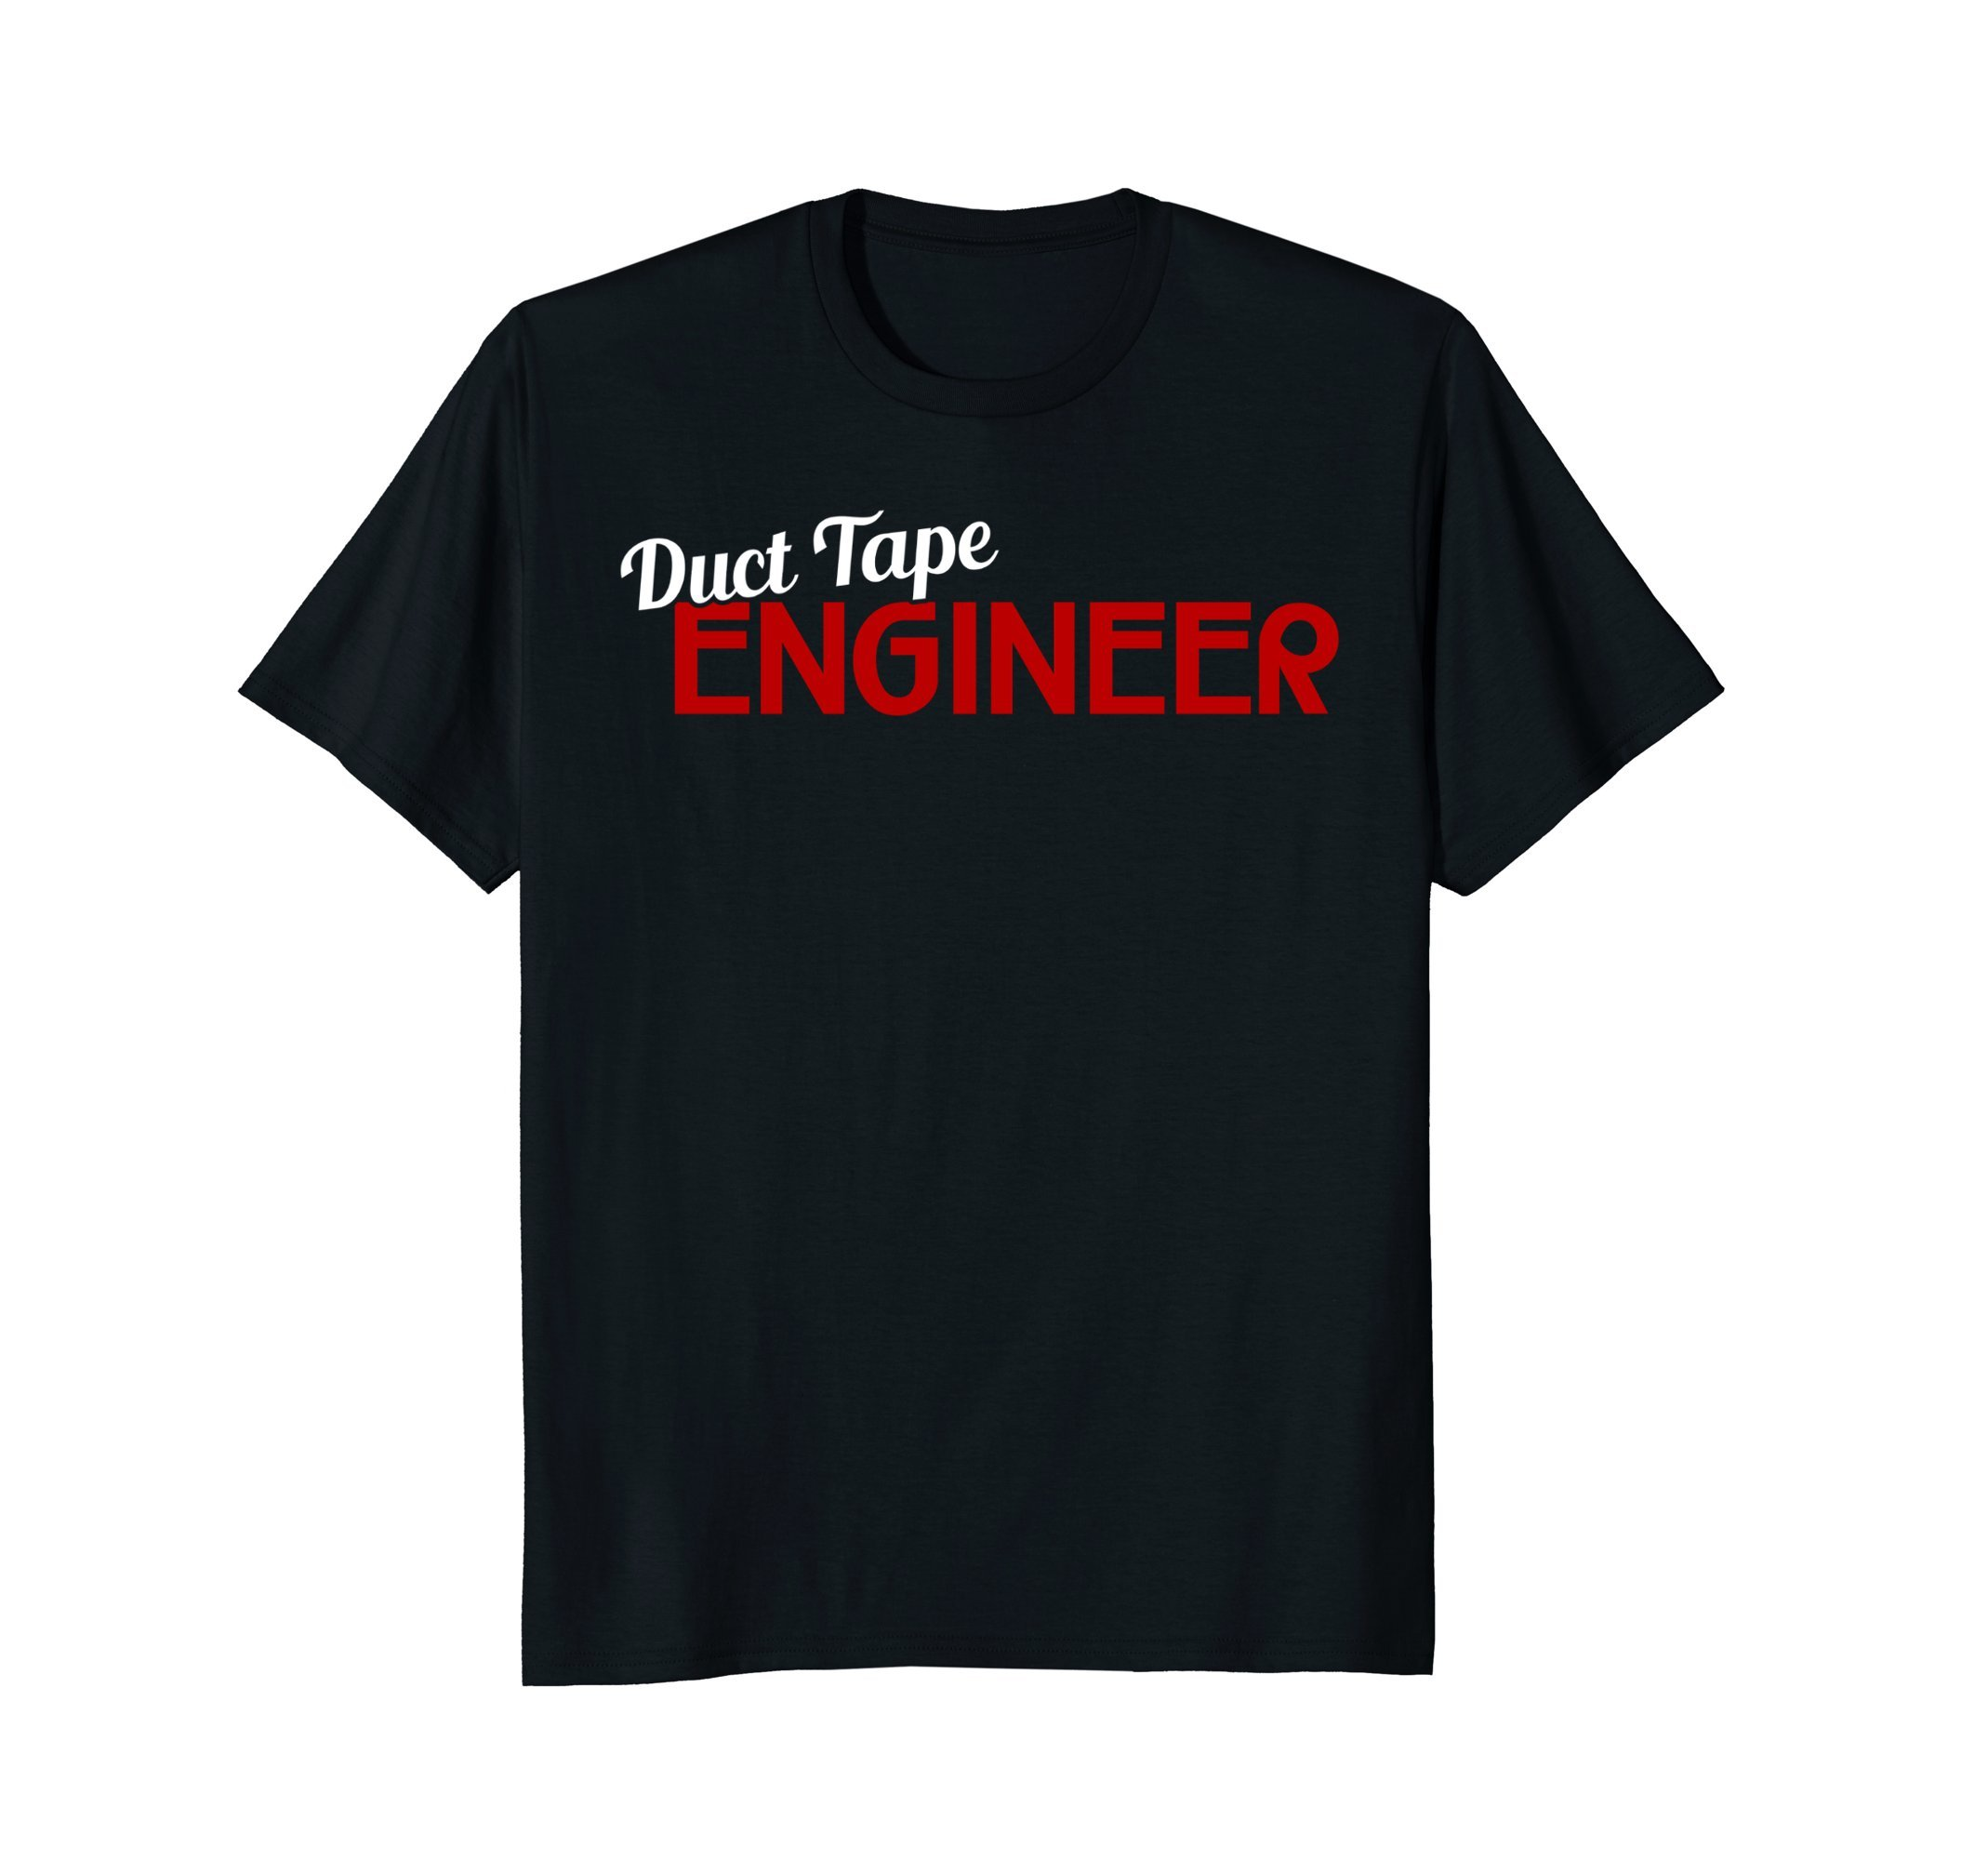 Duct Tape Engineer T-Shirt Funny Sayings Duct Tape